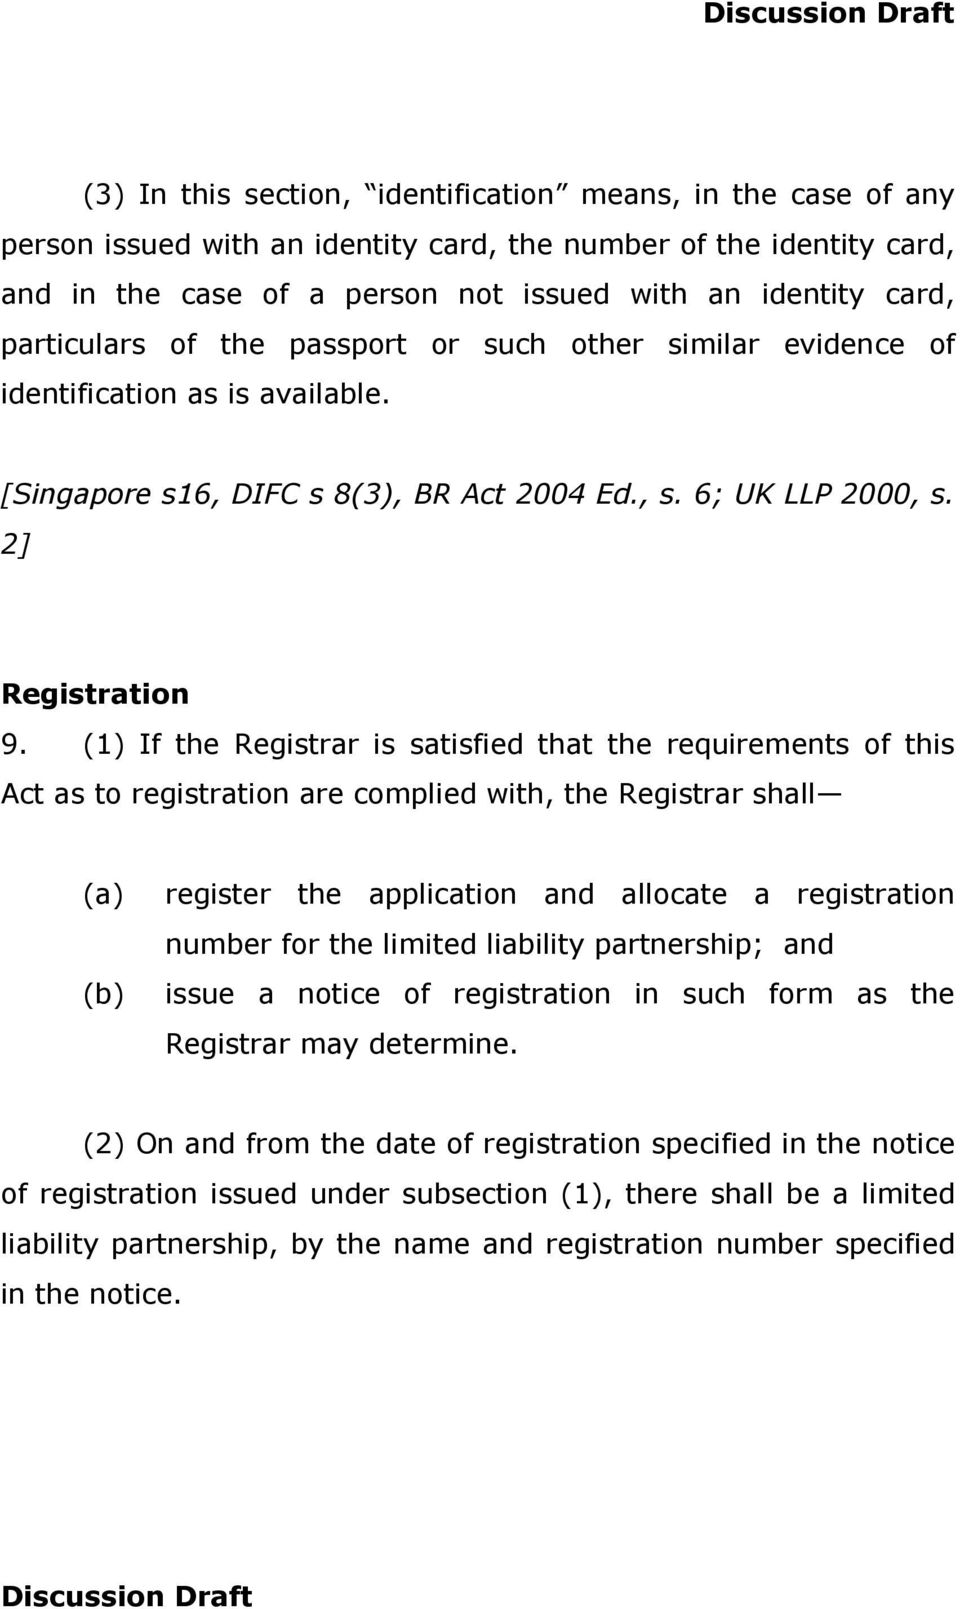 (1) If the Registrar is satisfied that the requirements of this Act as to registration are complied with, the Registrar shall (a) register the application and allocate a registration number for the